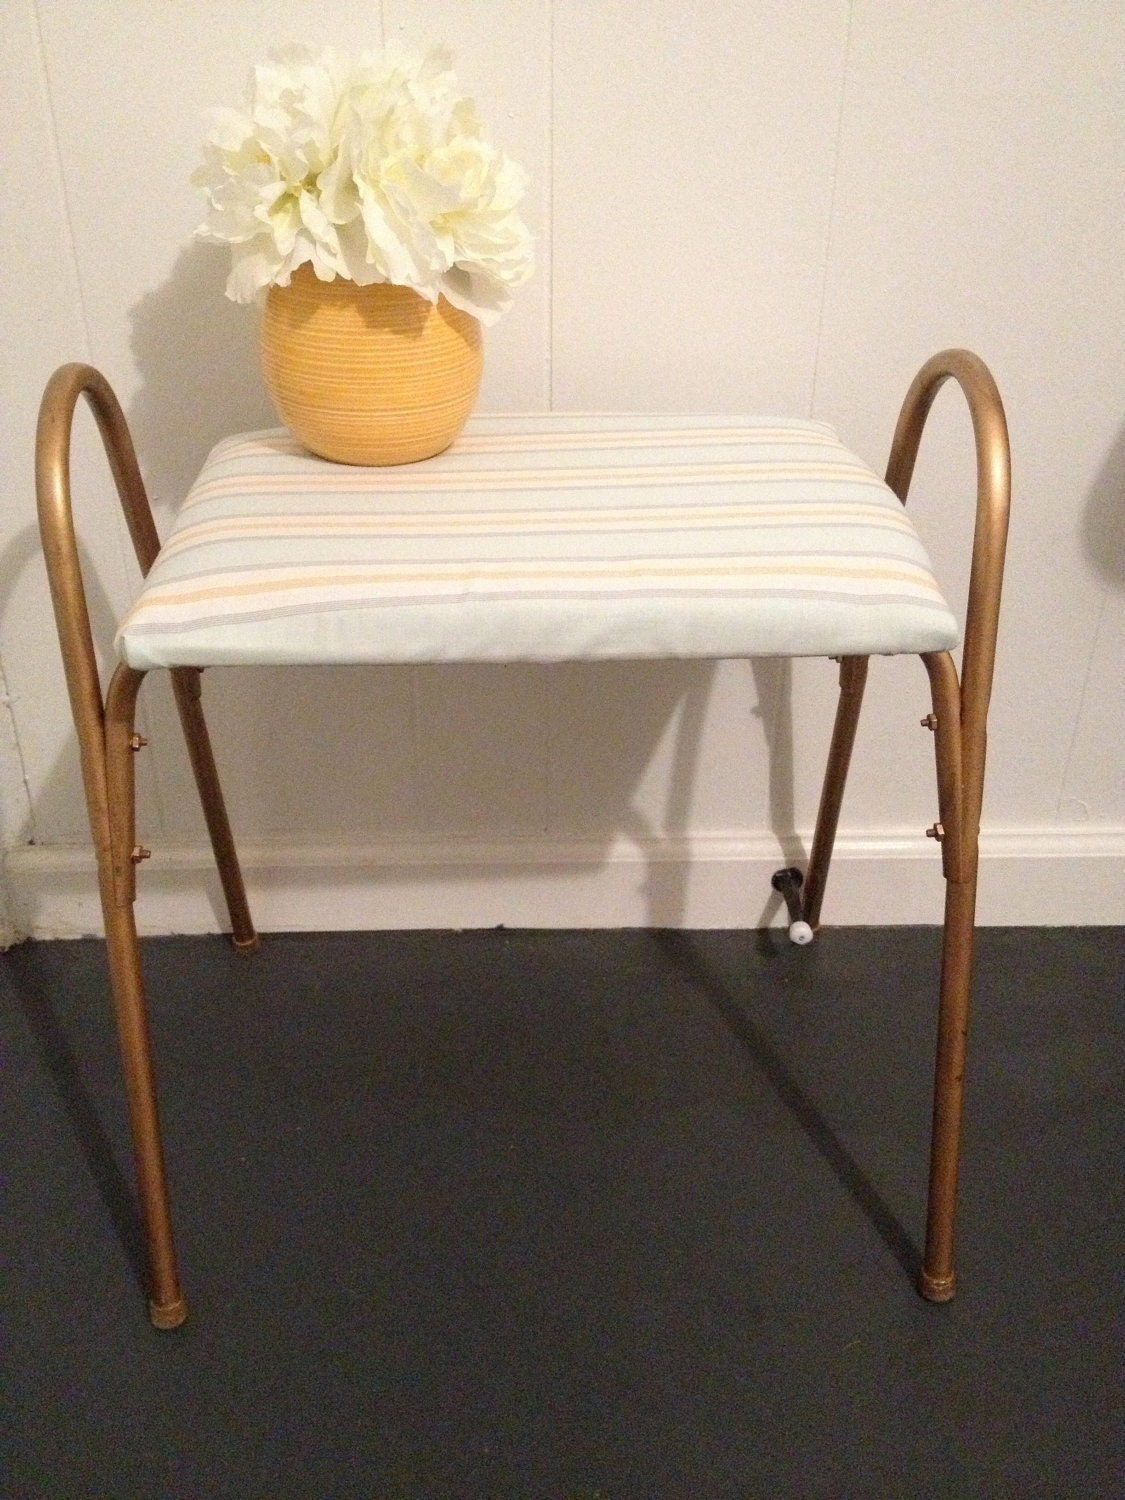 Upcycled Vintage Gold Metal Sitting Bench - Mint, Yellow, Gray Stripes